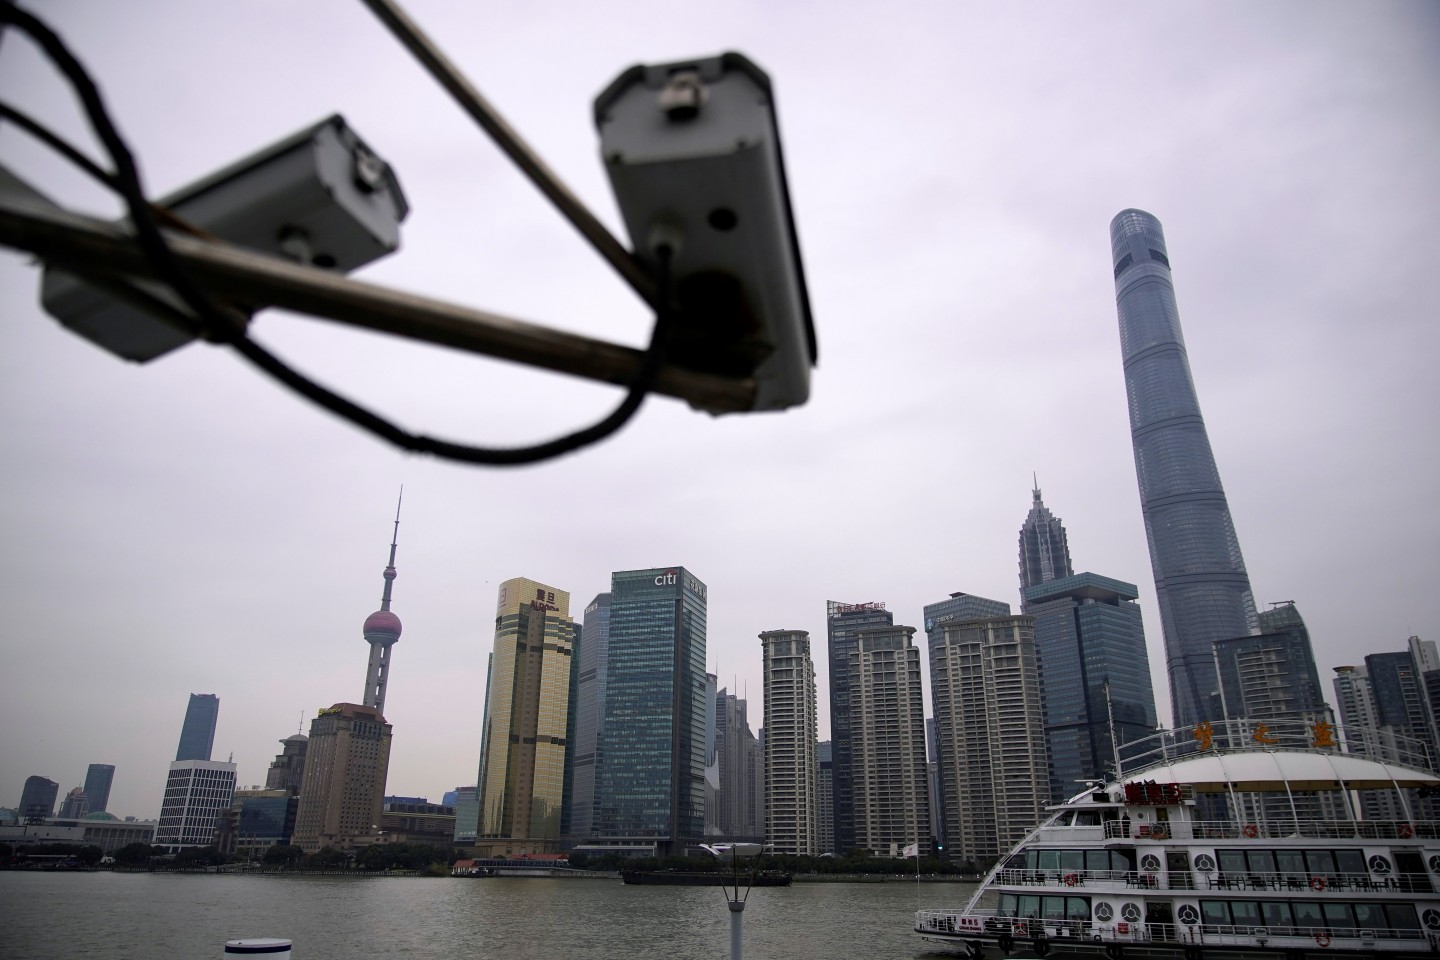 The East and the West have divergent reactions to the topic of state surveillance. In this photo taken on 15 January 2020, surveillance cameras are seen at Lujiazui financial district of Pudong, Shanghai. (Aly Song/Reuters)